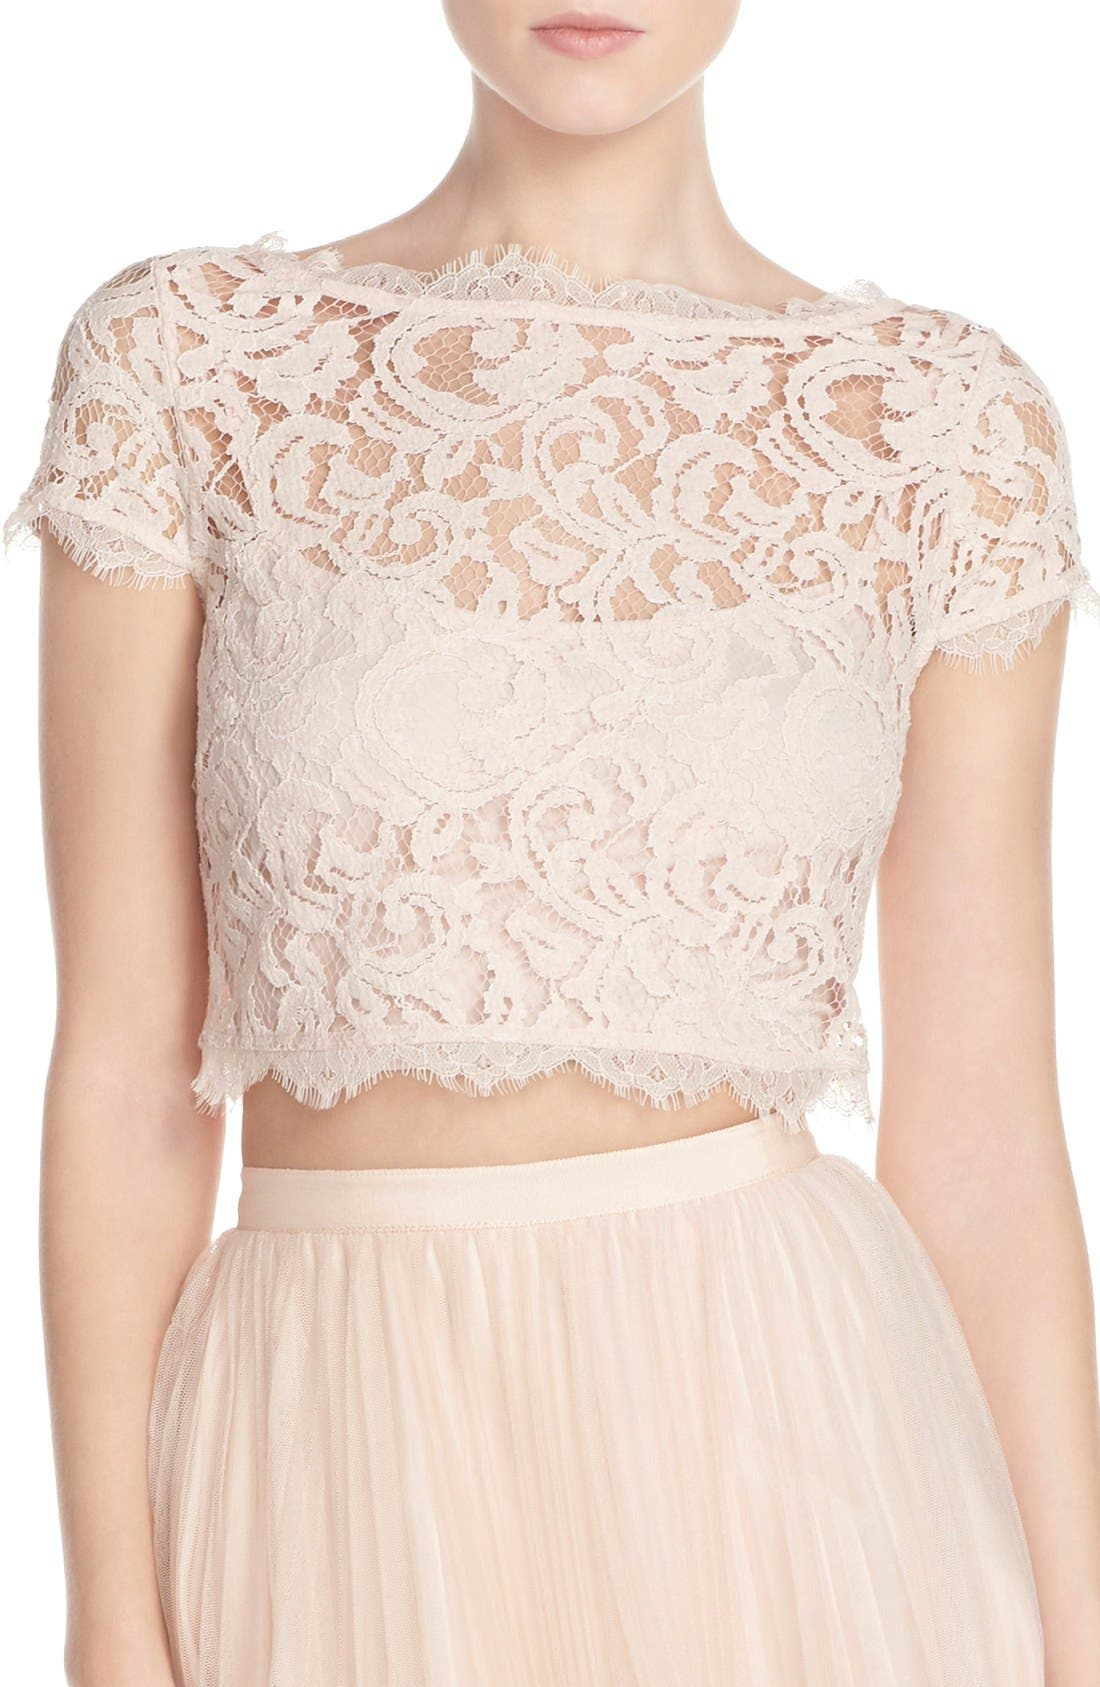 Main Image - Adrianna Papell Lace Crop Top